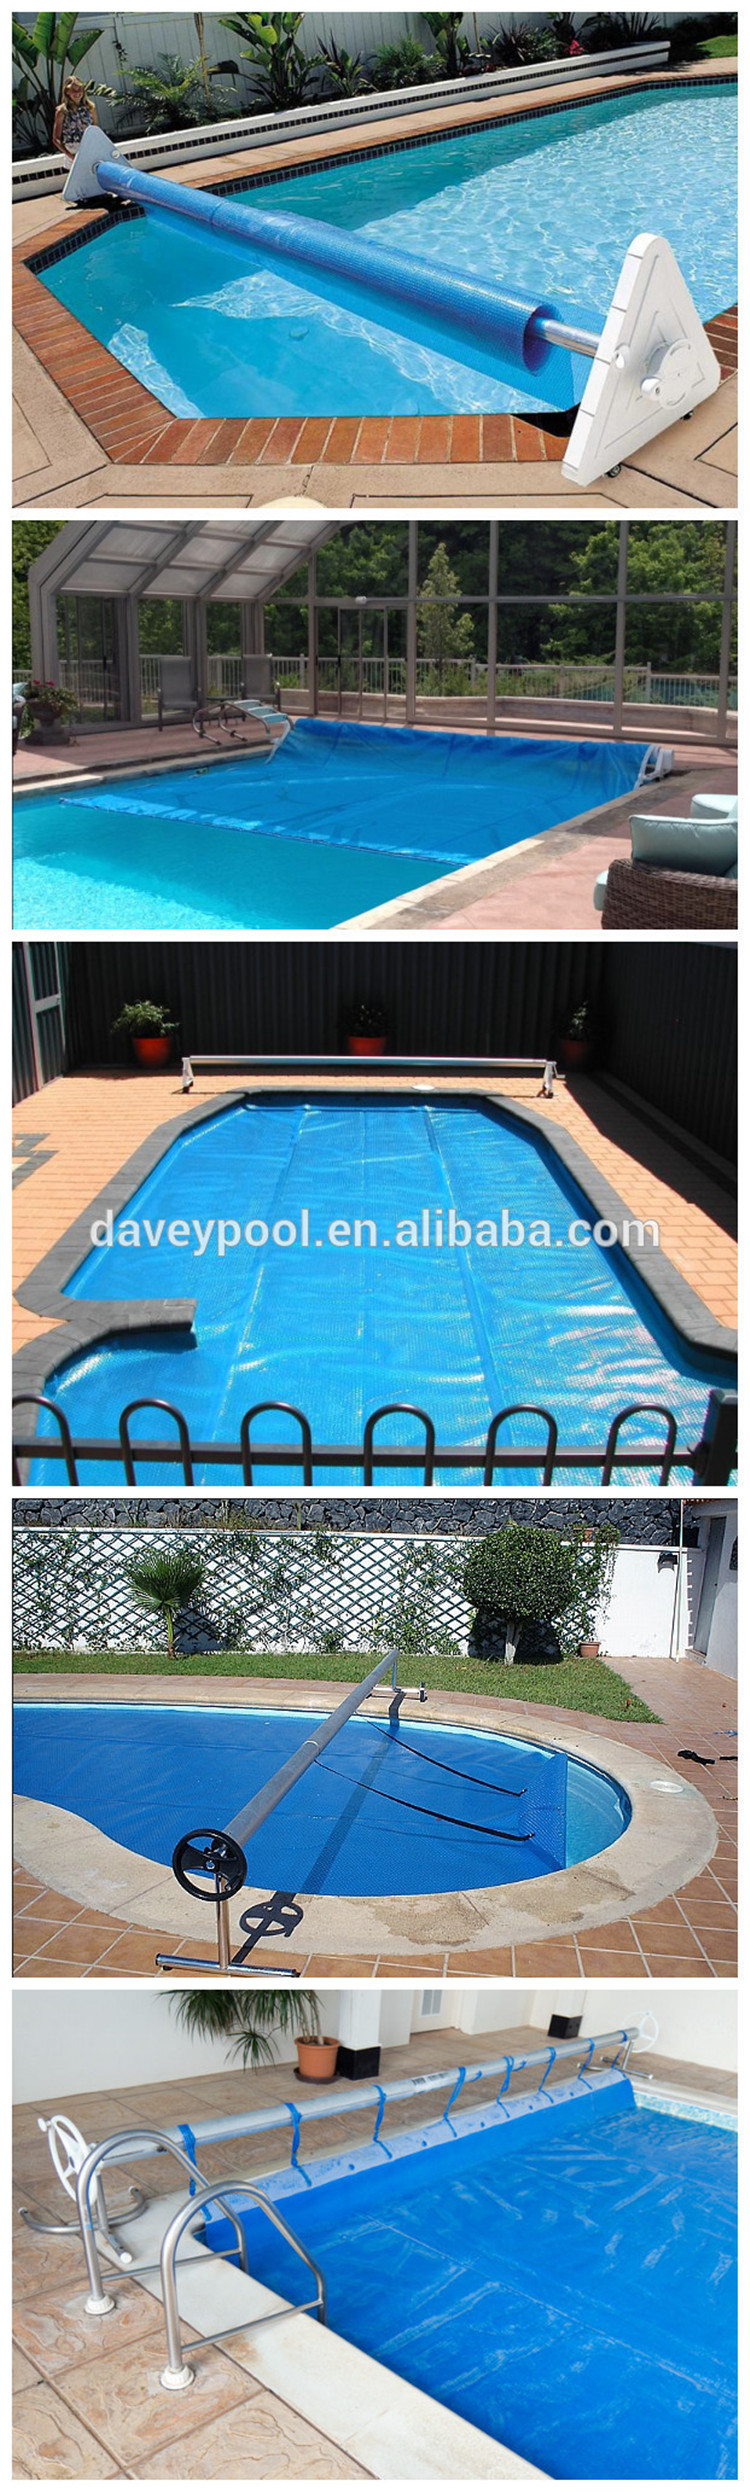 Custom Size Plastic Blue Swimming Pool Bubble Cover,Thermal Pool ...